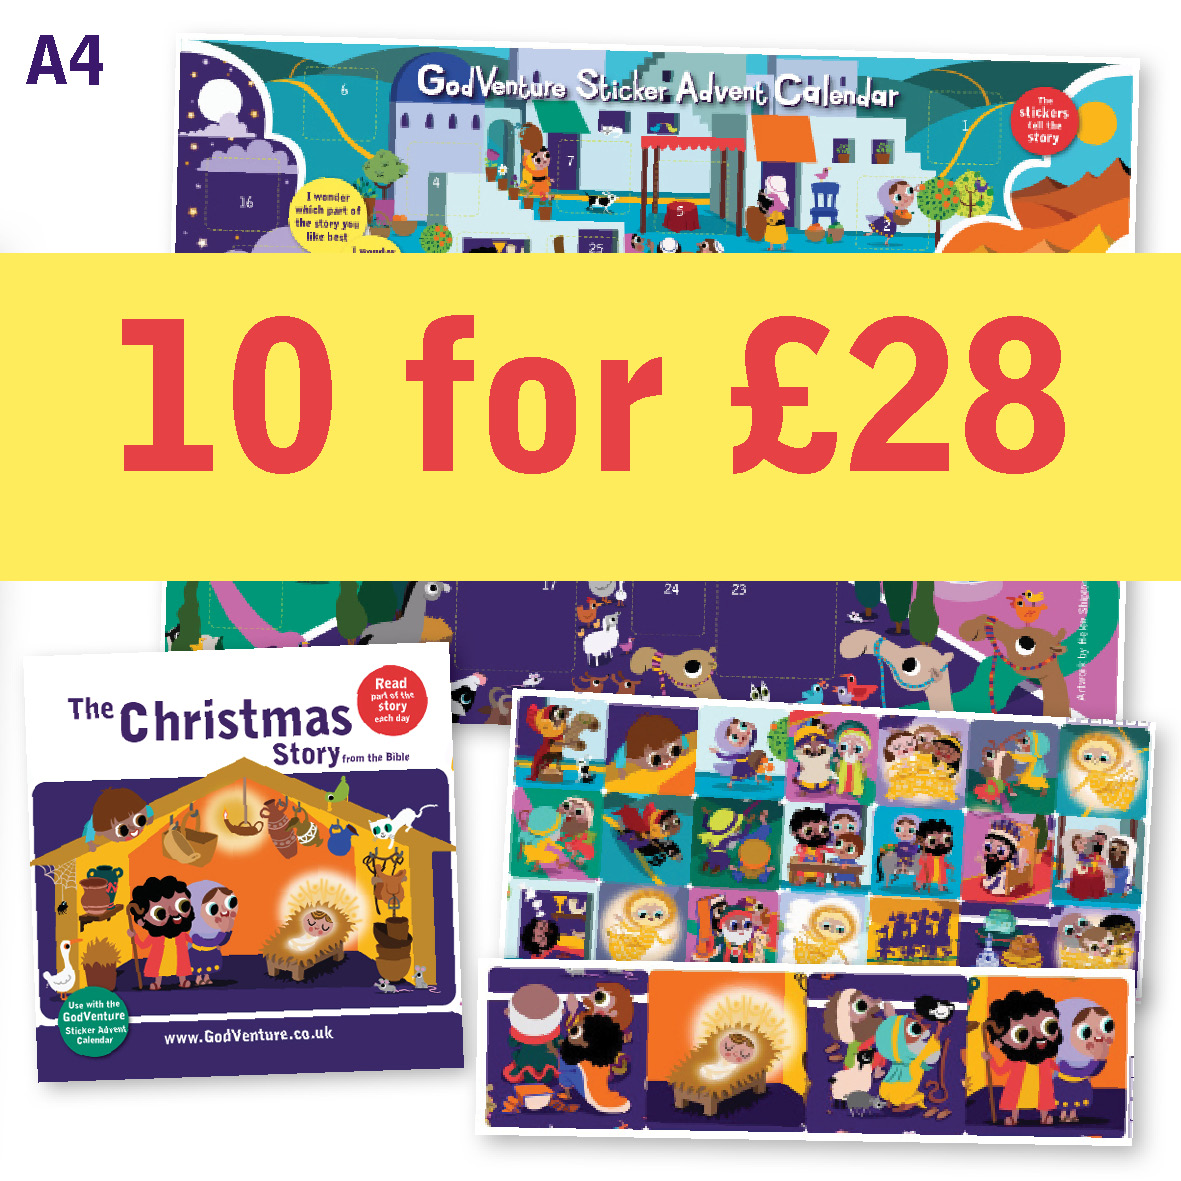 Advent Calendar Sticker offer BOGOF